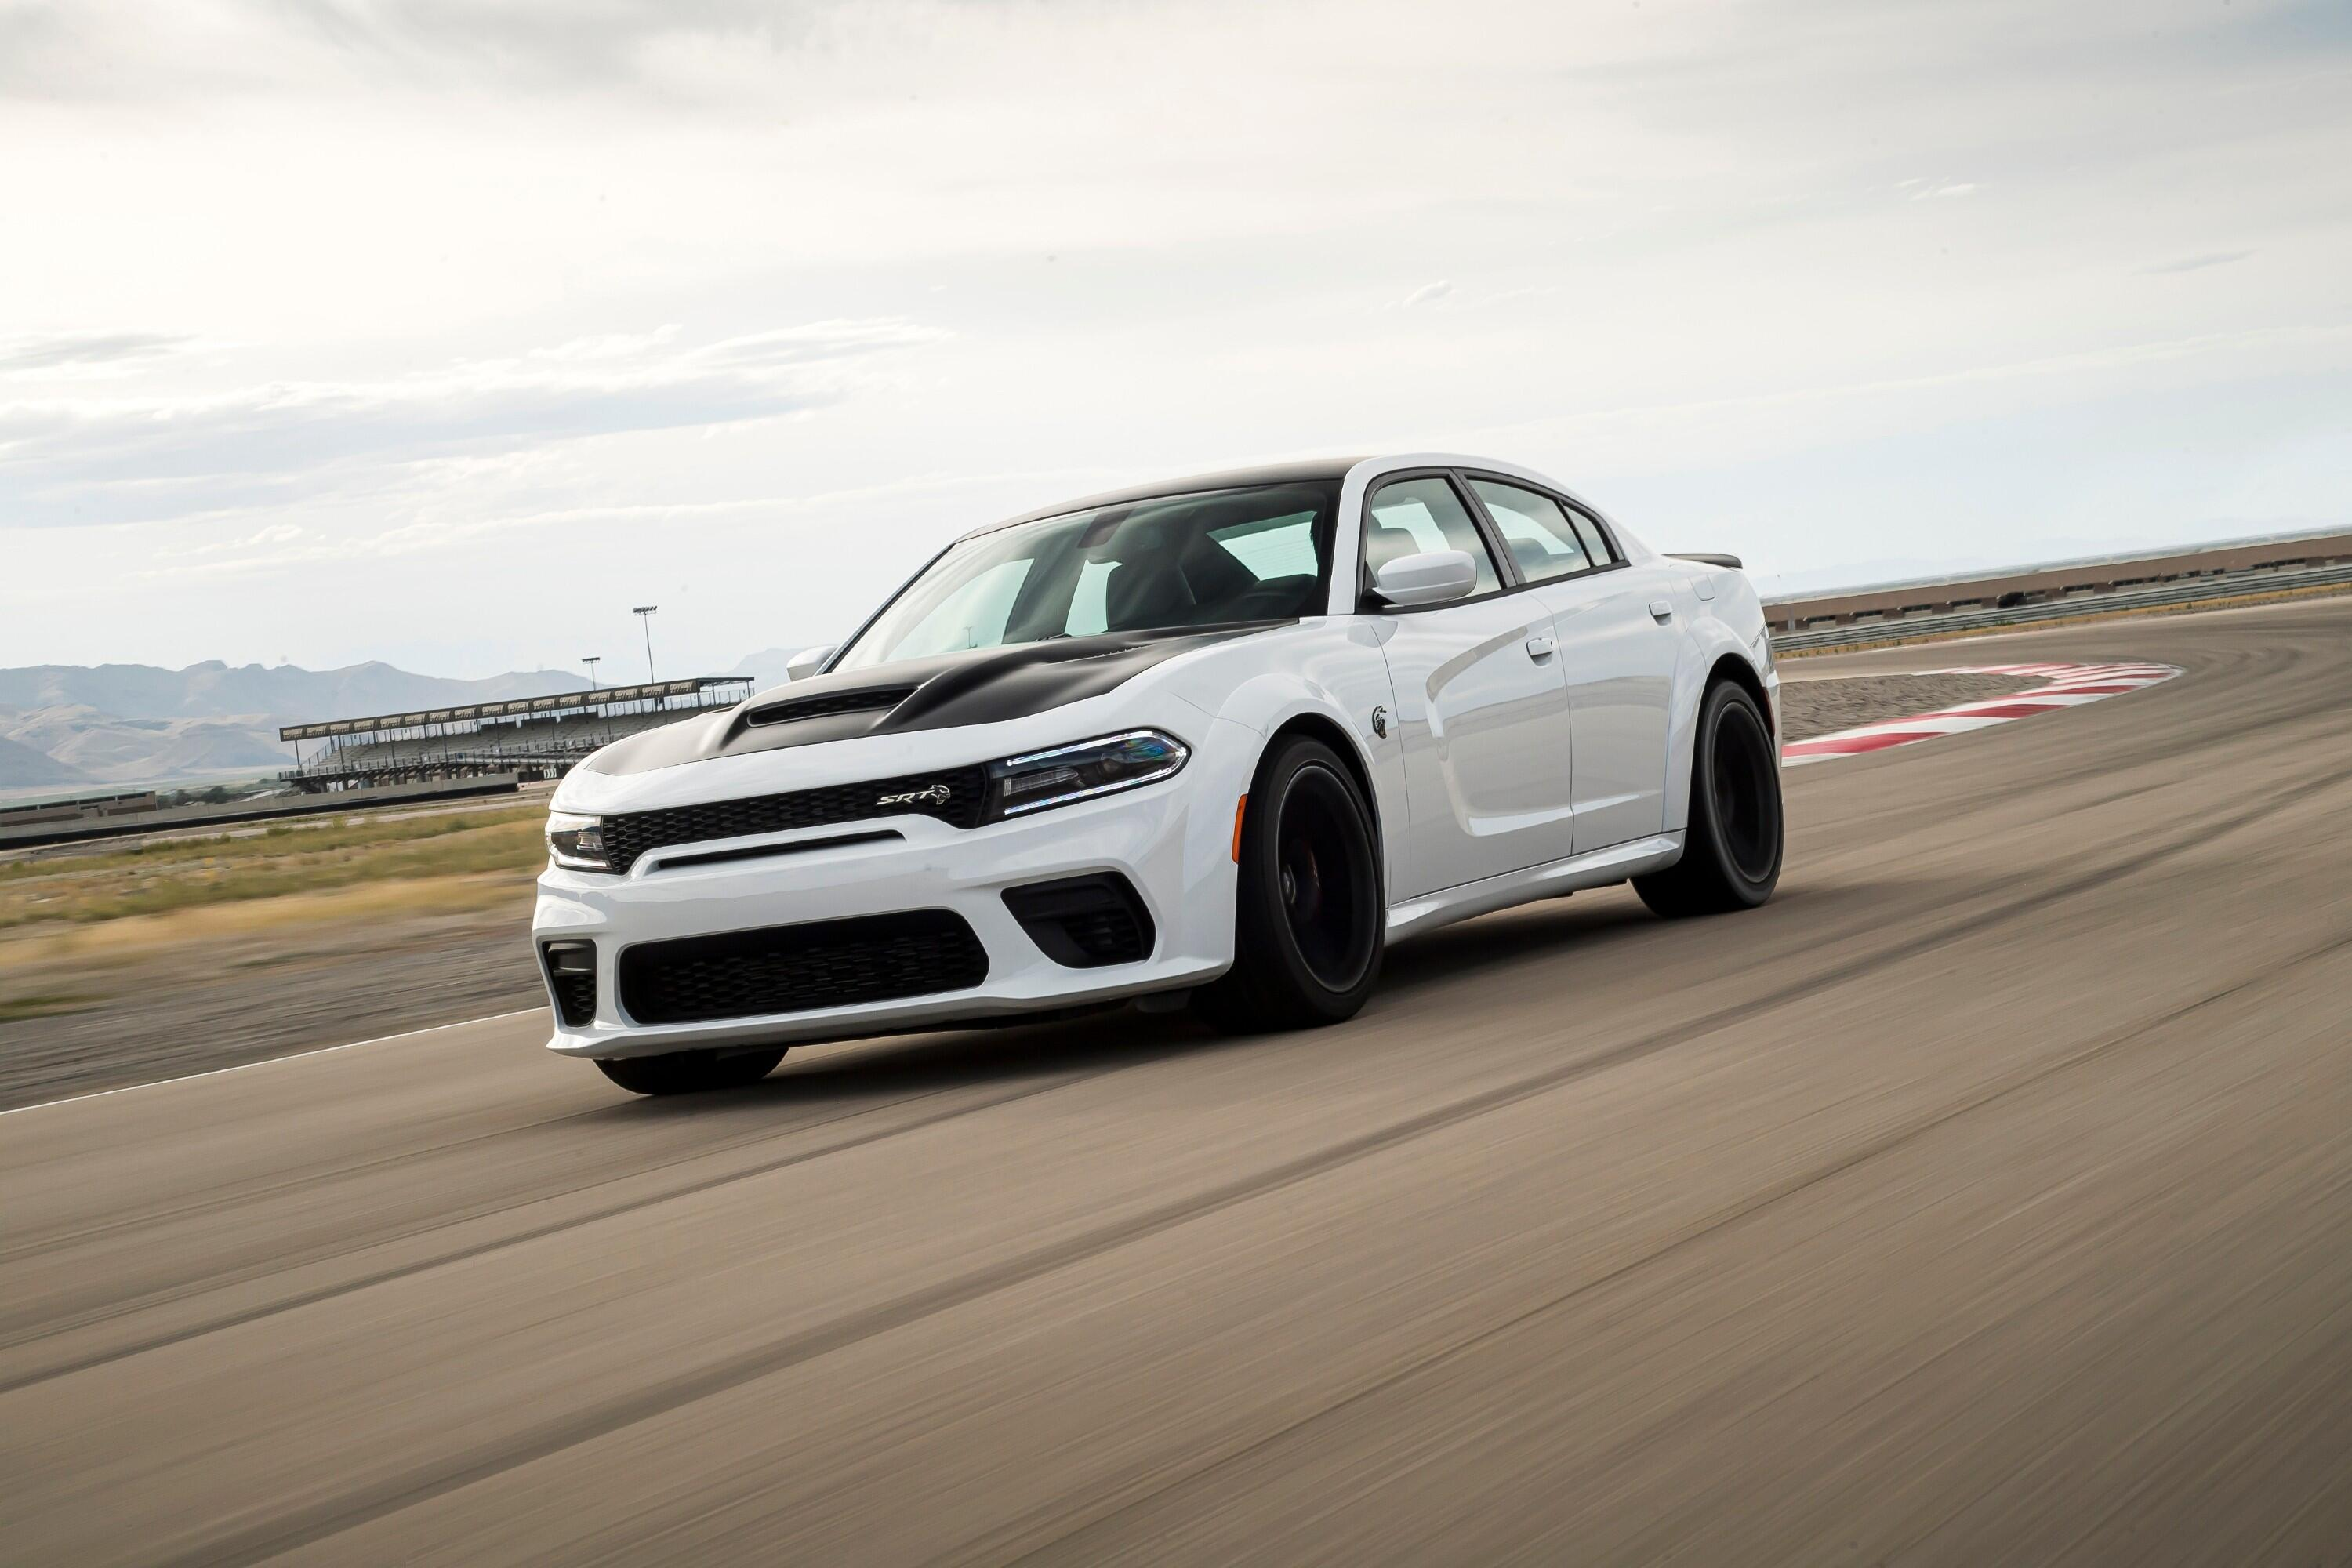 2021-dodge-charger-redeye-042